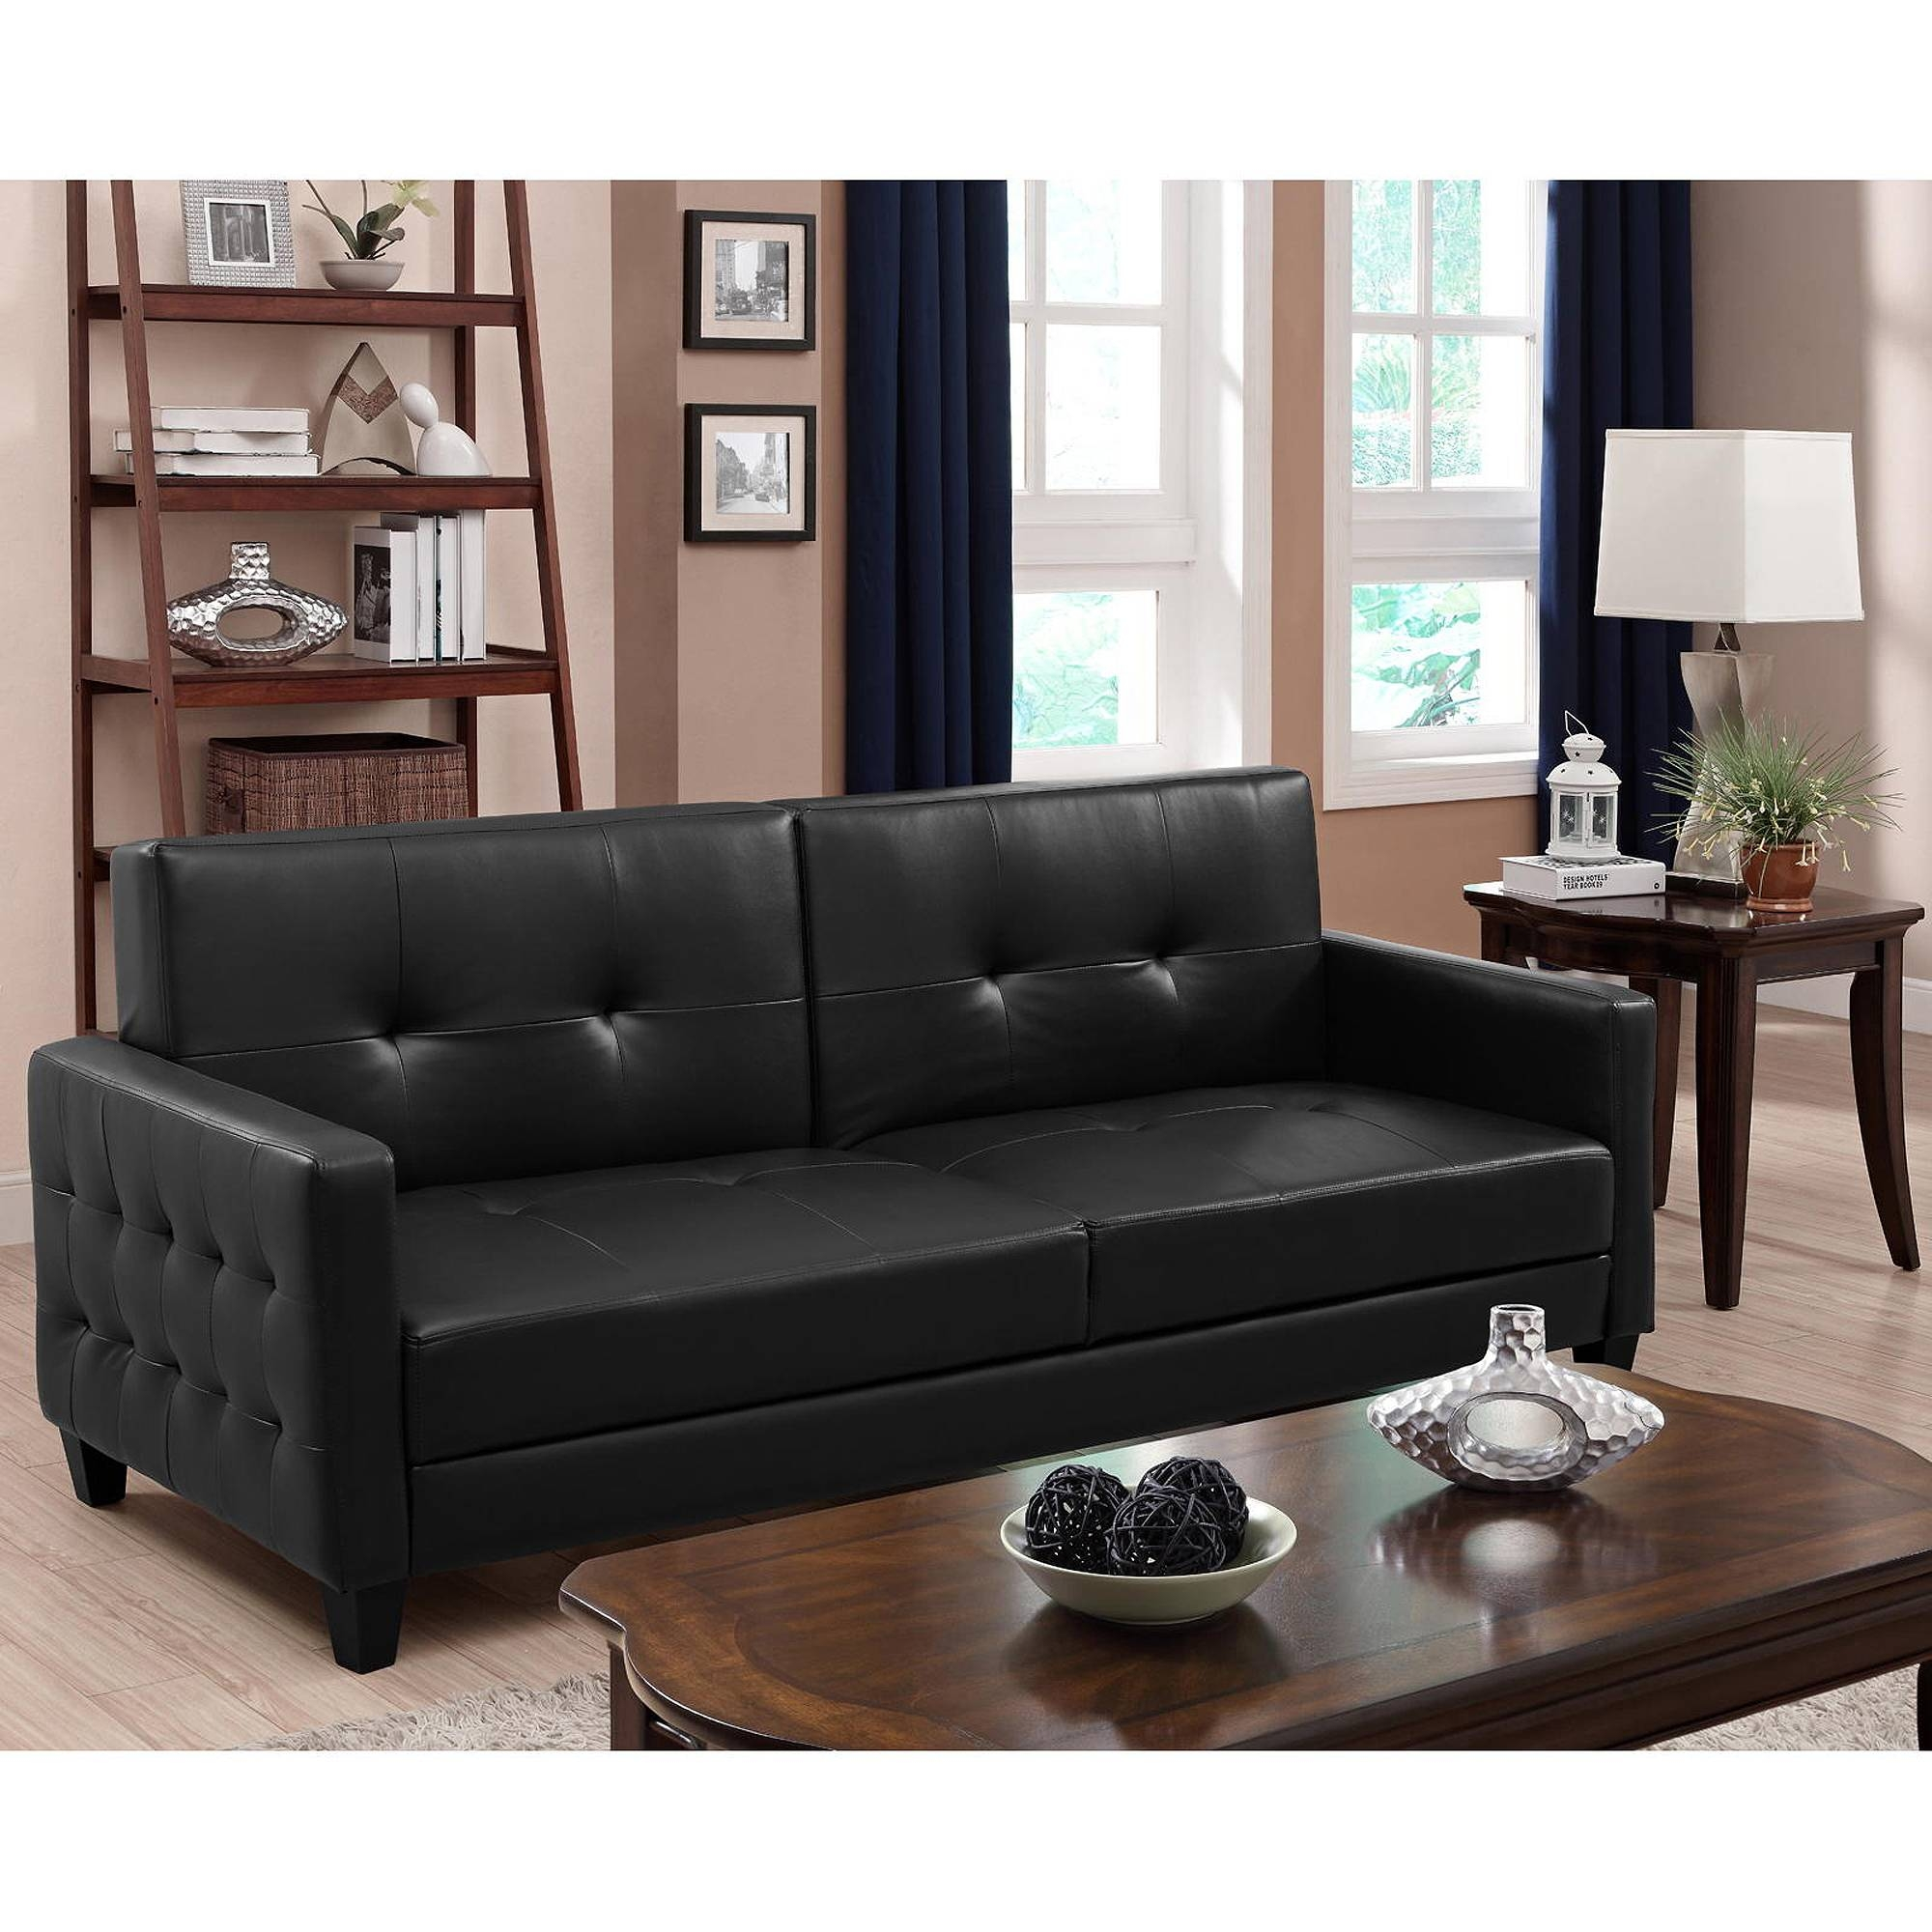 Premium Rome Convertible Futon, Multiple Colors - Walmart with Faux Leather Futon Sofas (Image 12 of 15)